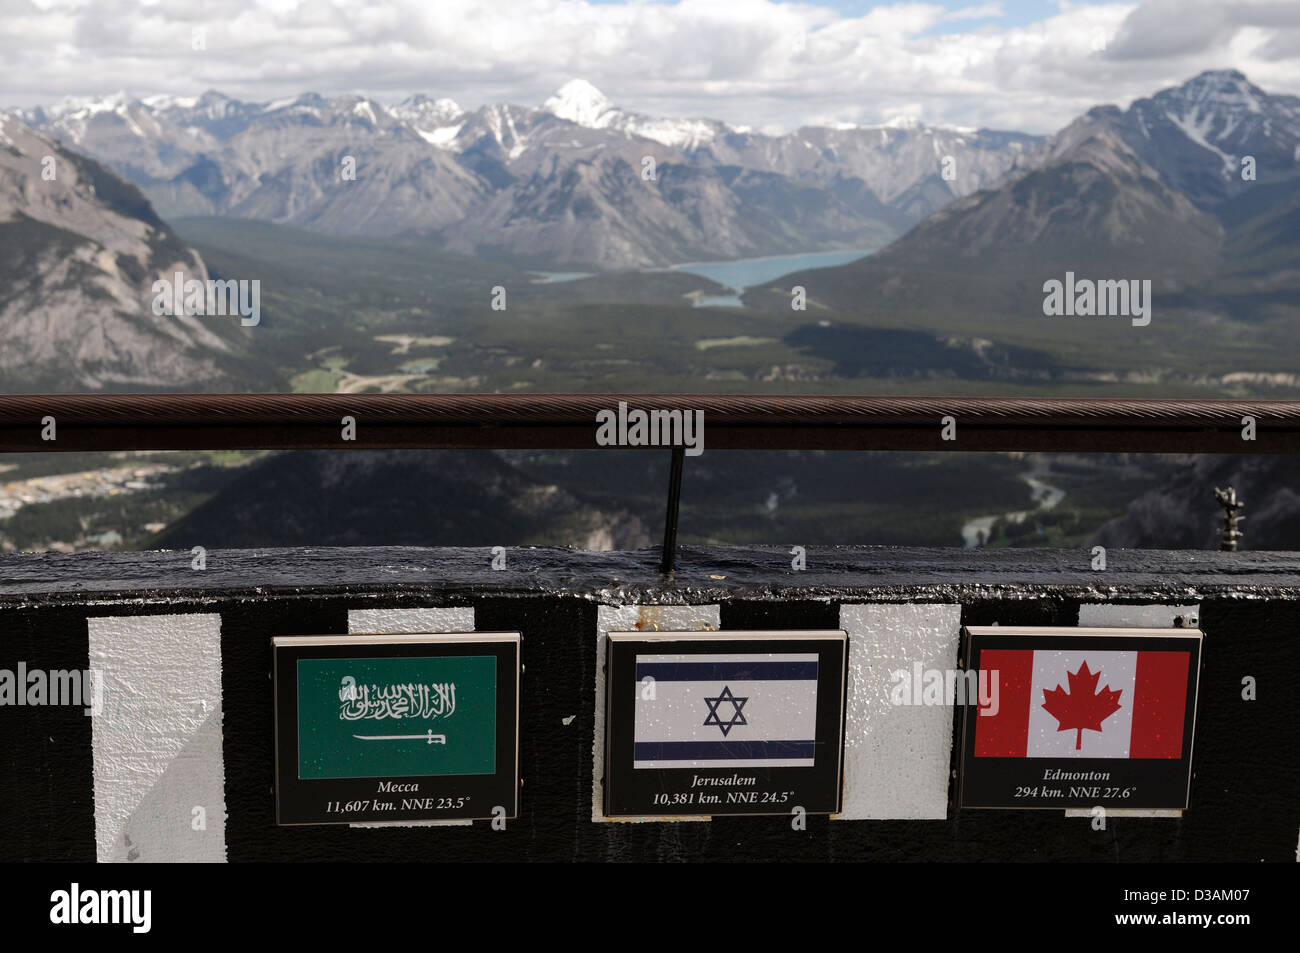 signs indicating distance to mecca jerusalem from sulphur mountain banff national park tourism tourist point of - Stock Image